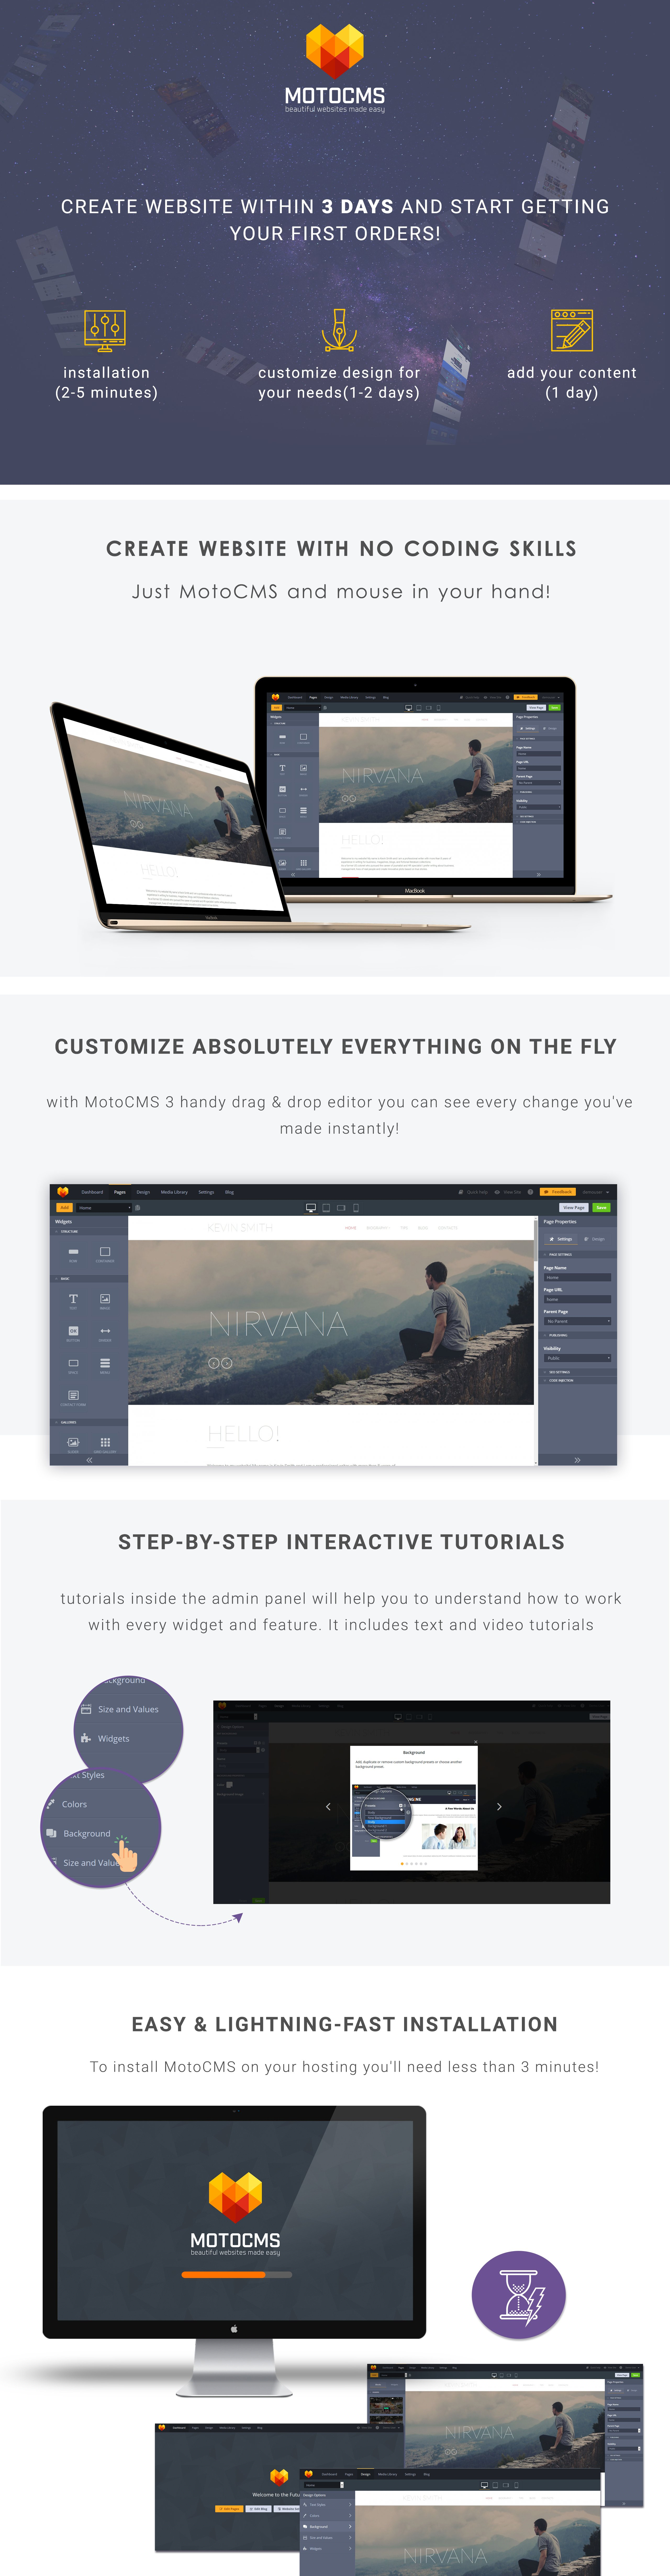 Kevin Smith Responsive Moto CMS 3 Template with Slider, Carousel, Blog